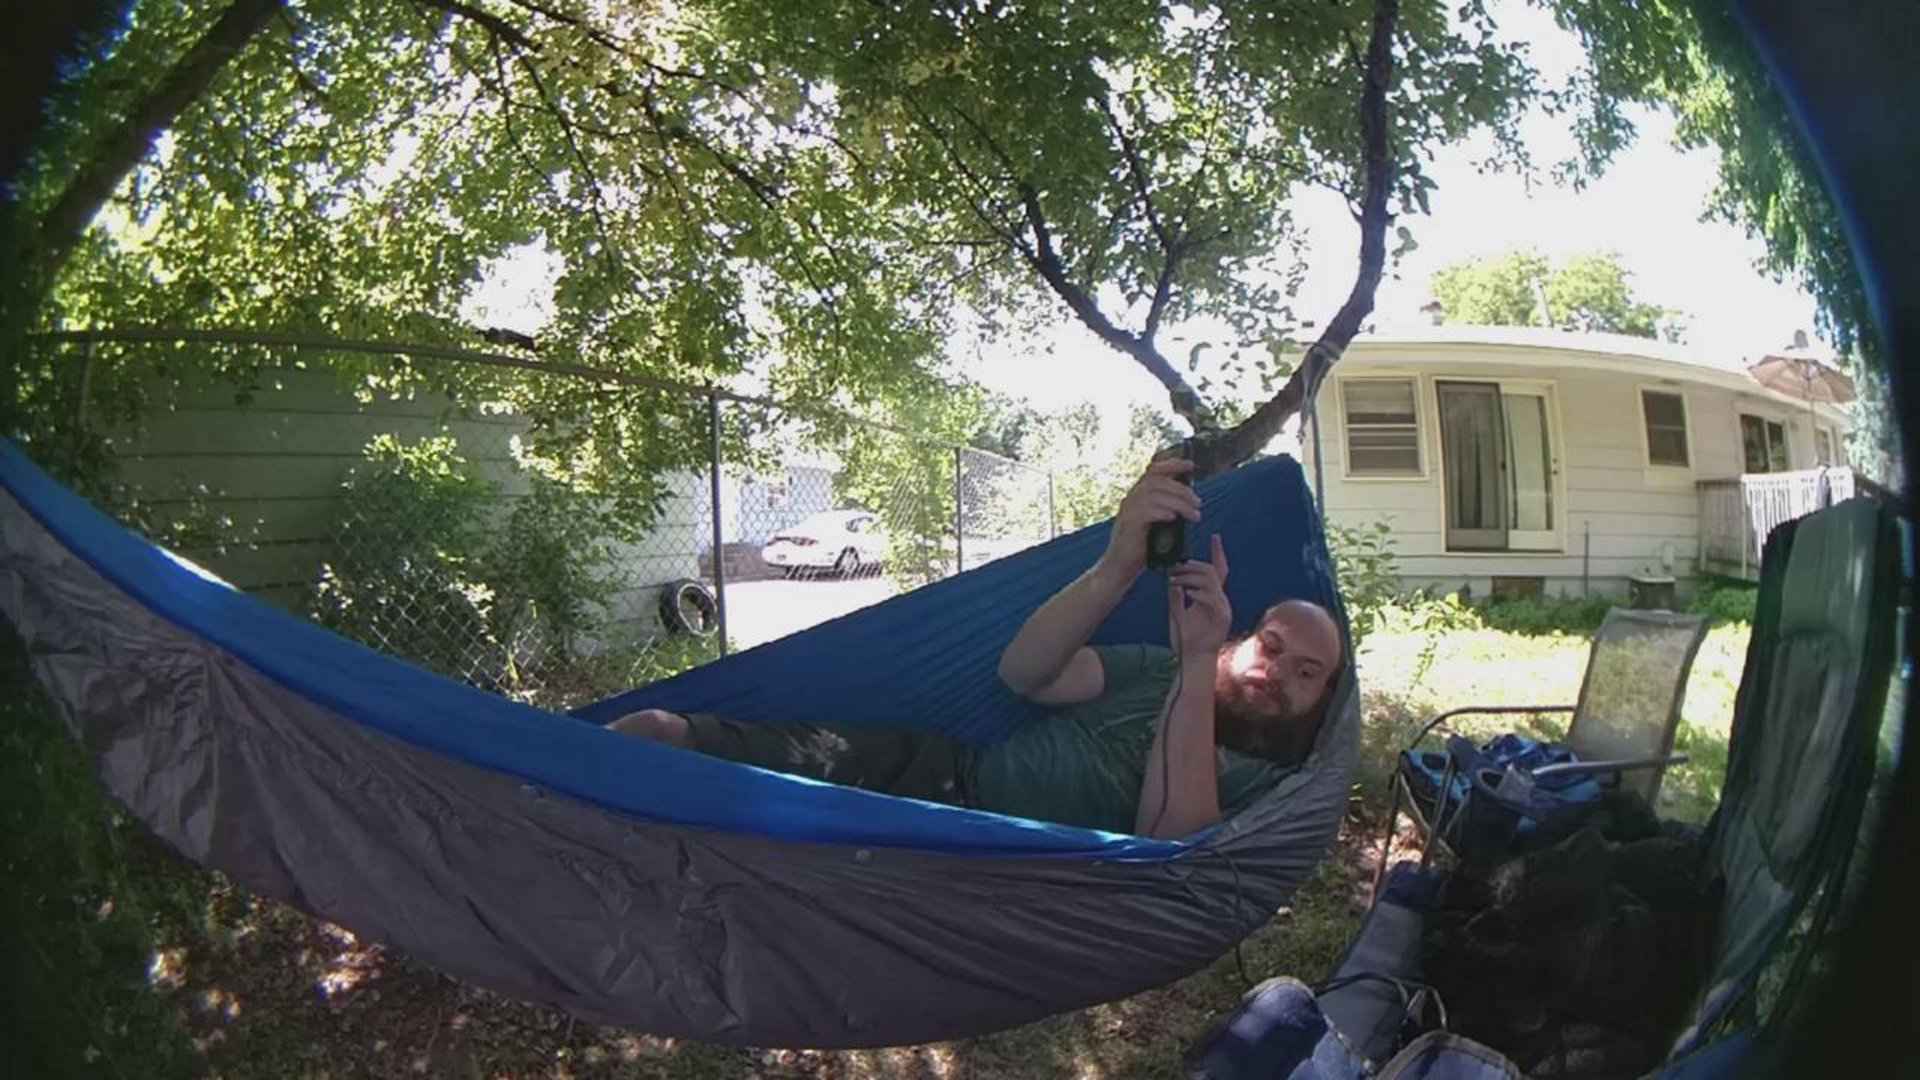 rt-b3ckdotcom-hammawk-hammock-simulator-2018-0902-https-t-co-bkfulf79qh-https-t-co-la92dtlwrl